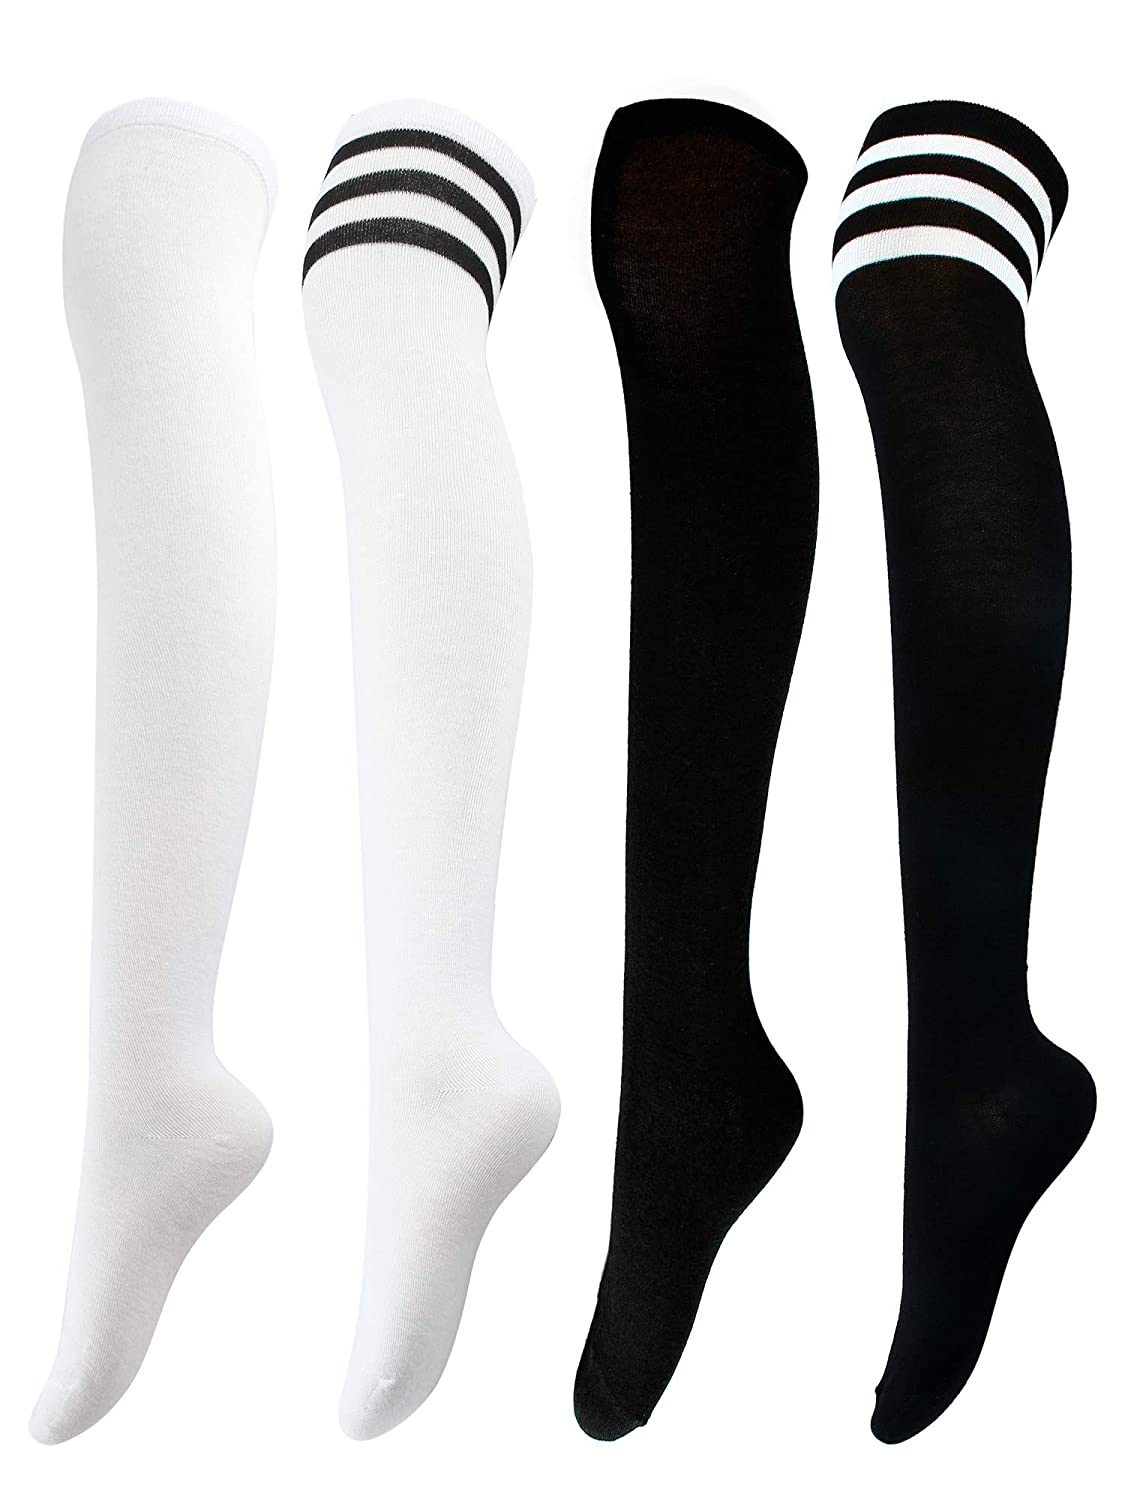 Aneco Over Knee Thigh Socks Knee-High Sock High Thigh Stockings High Boot Thigh Women Socks for Cosplay, Daily Wear